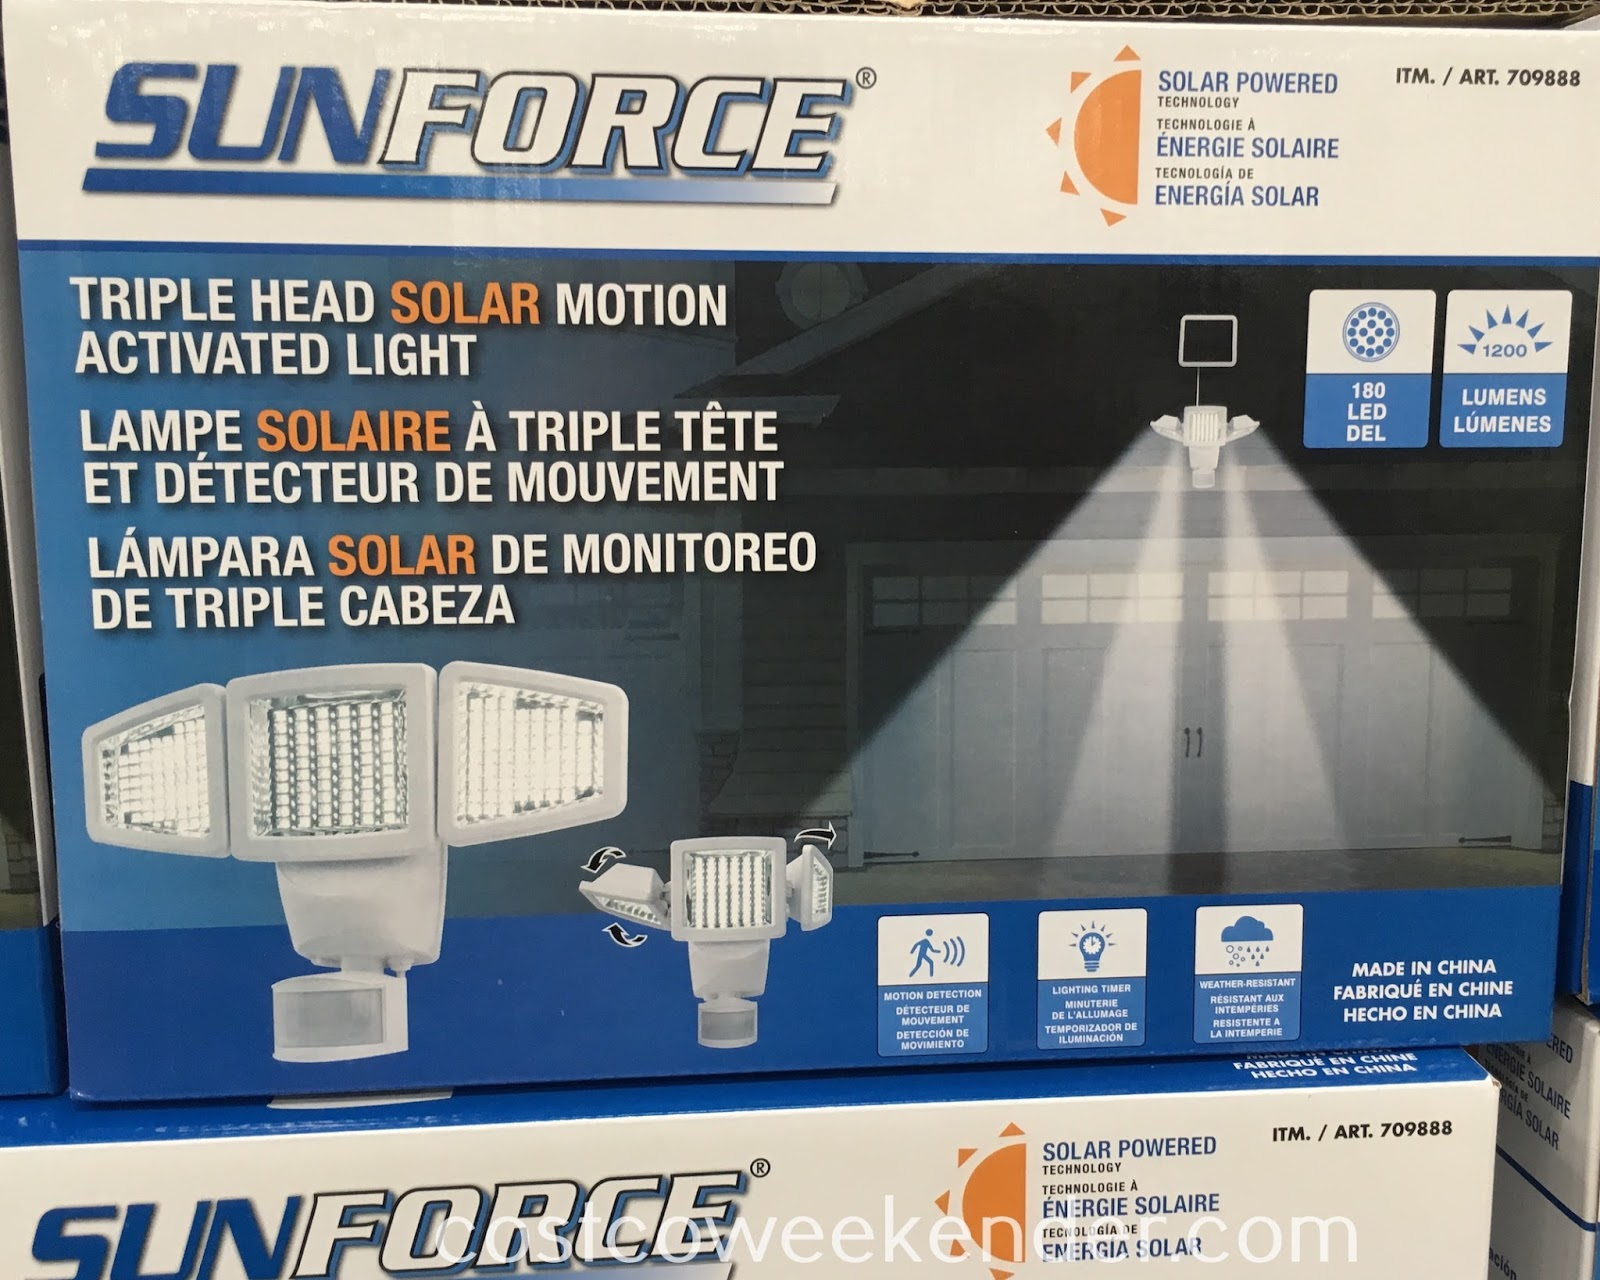 If security is a concern, then check out the SunForce Triple Head Solar Motion Activated Light